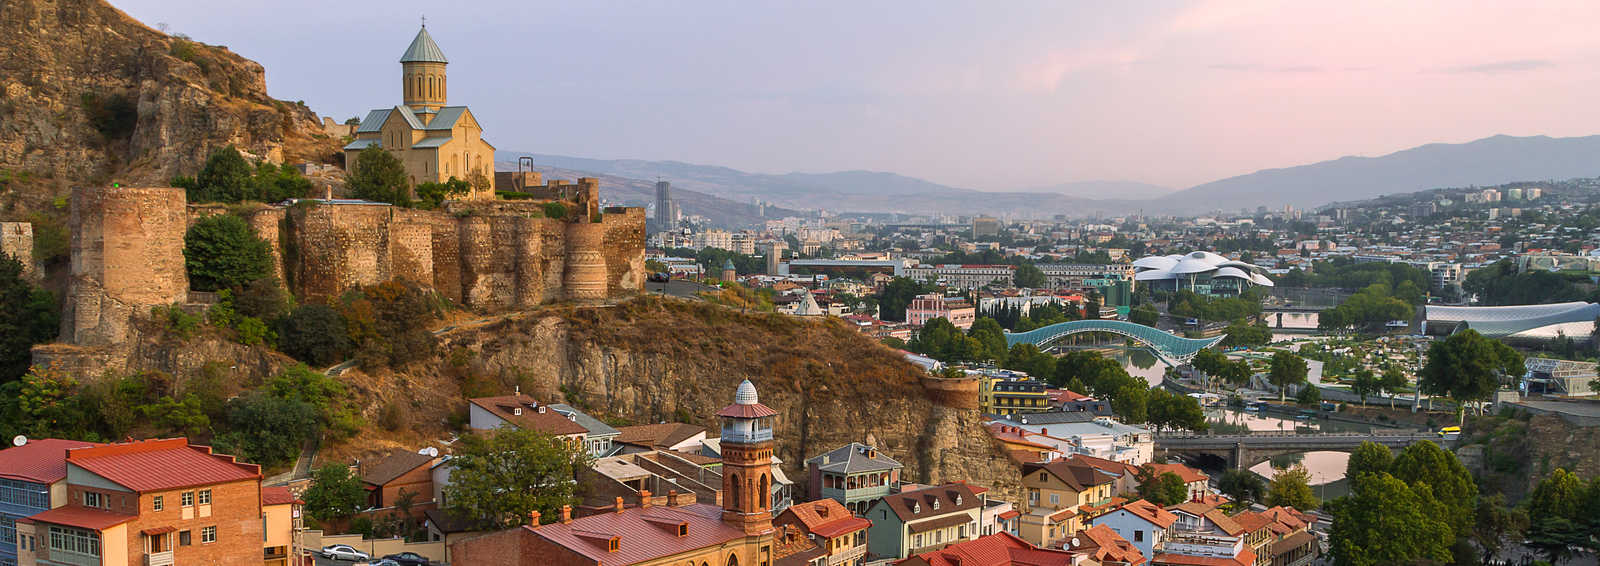 Narikala Castle and view over Tbilisi, Georgia